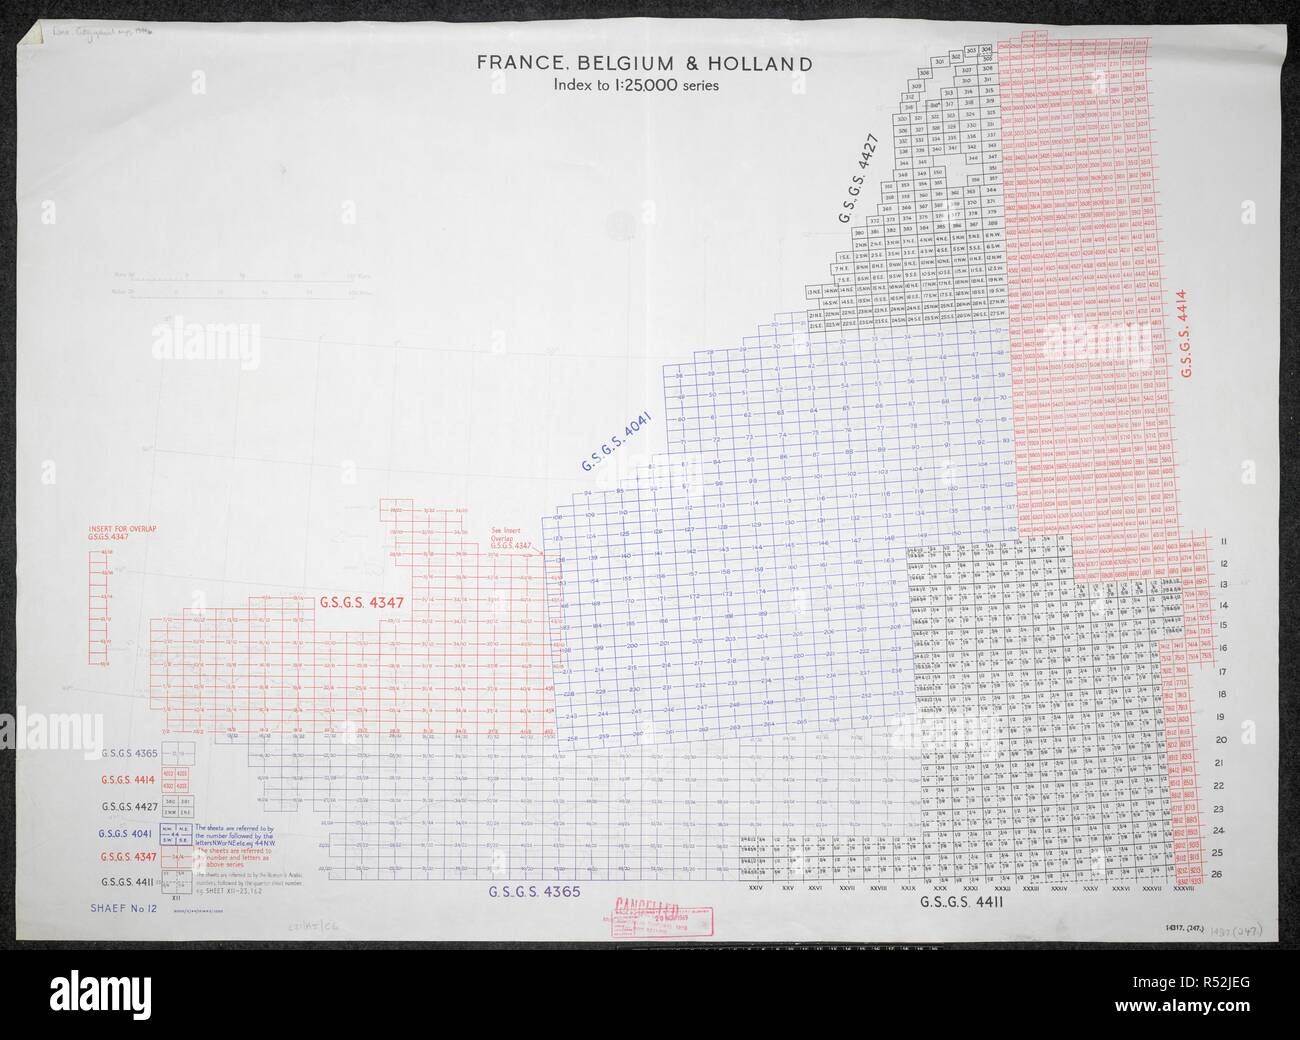 A Graphic Index On A Map Of The Second World War France Belgium